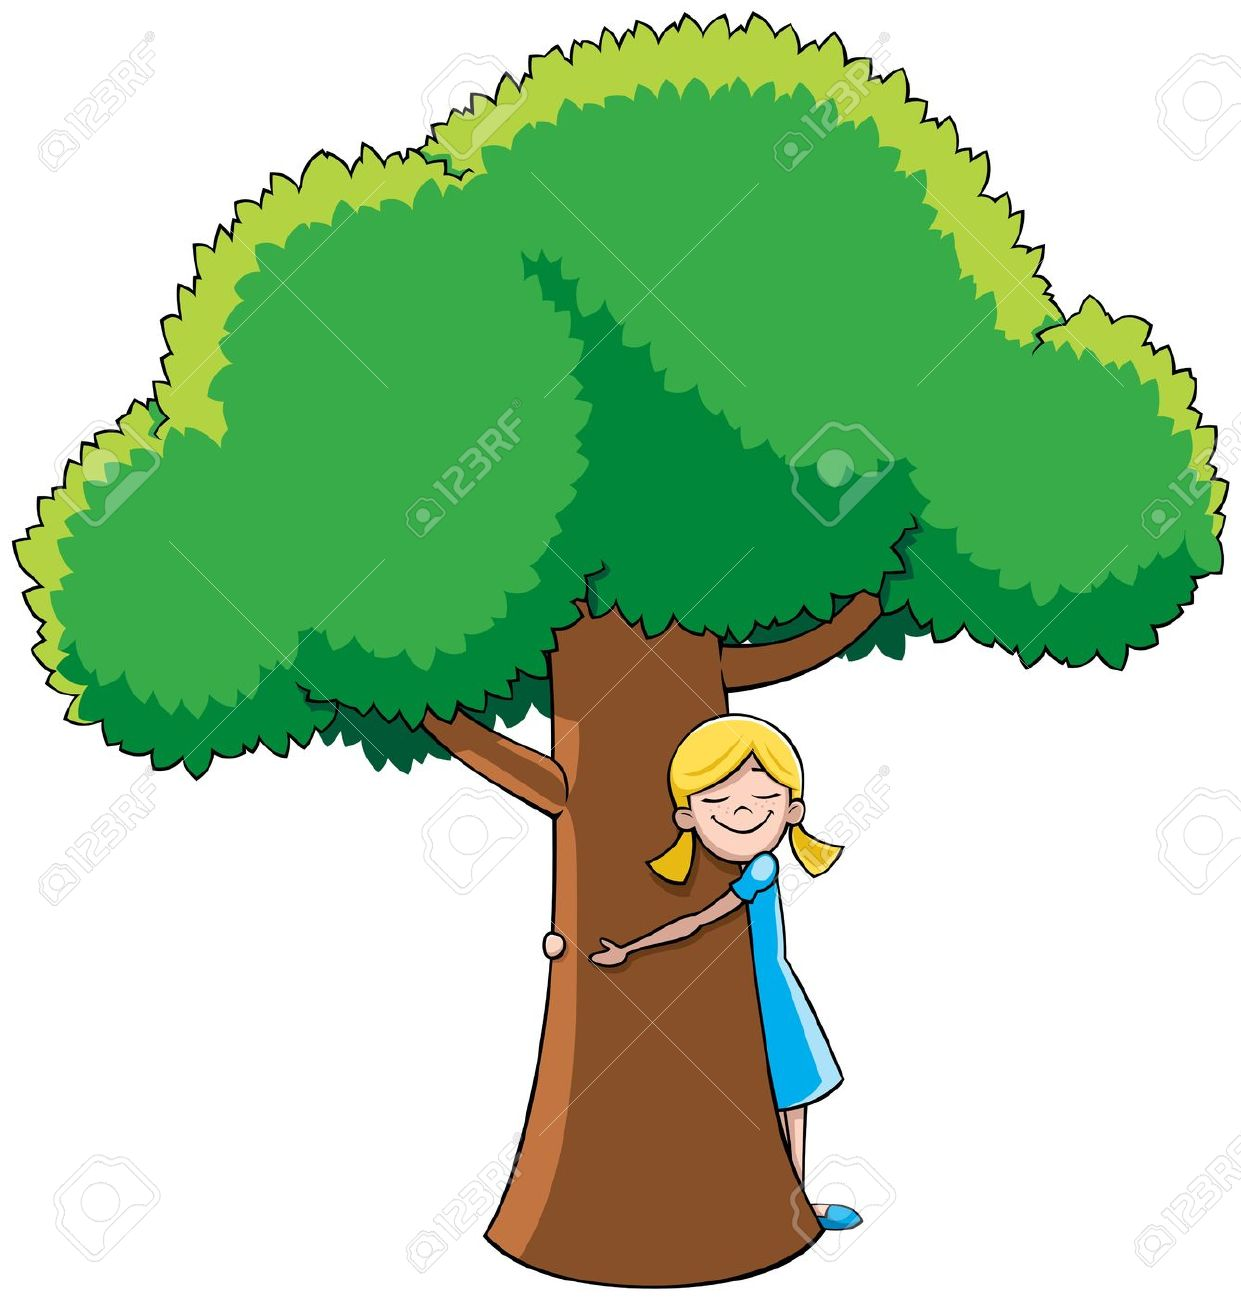 Little Girl Hugging Tree. No Transparency And Gradients Used.